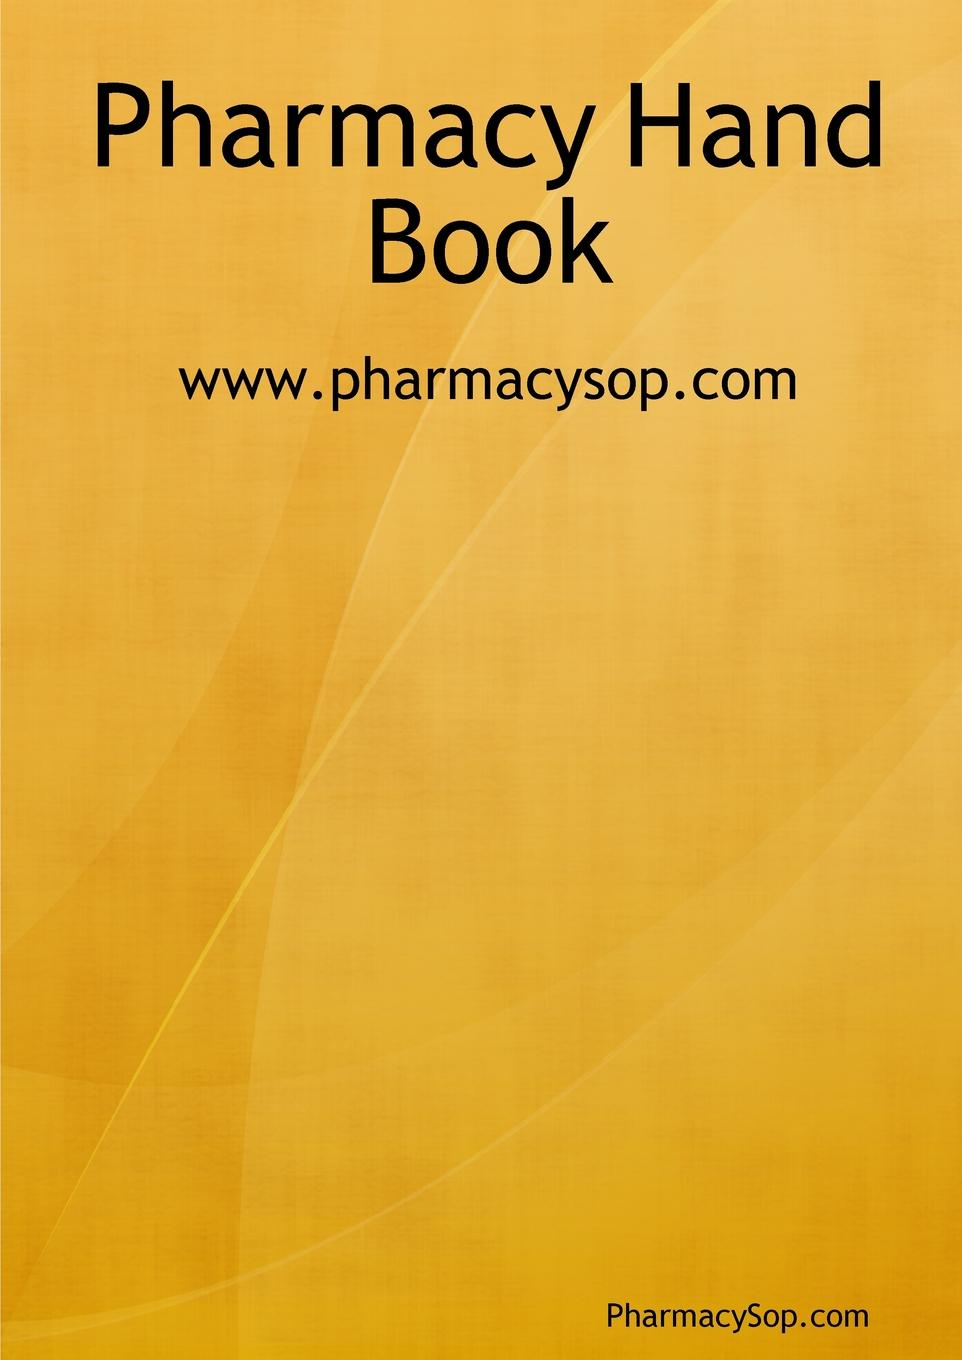 Pharmacy Sop Com Pharmacy Hand Book dap017a sop